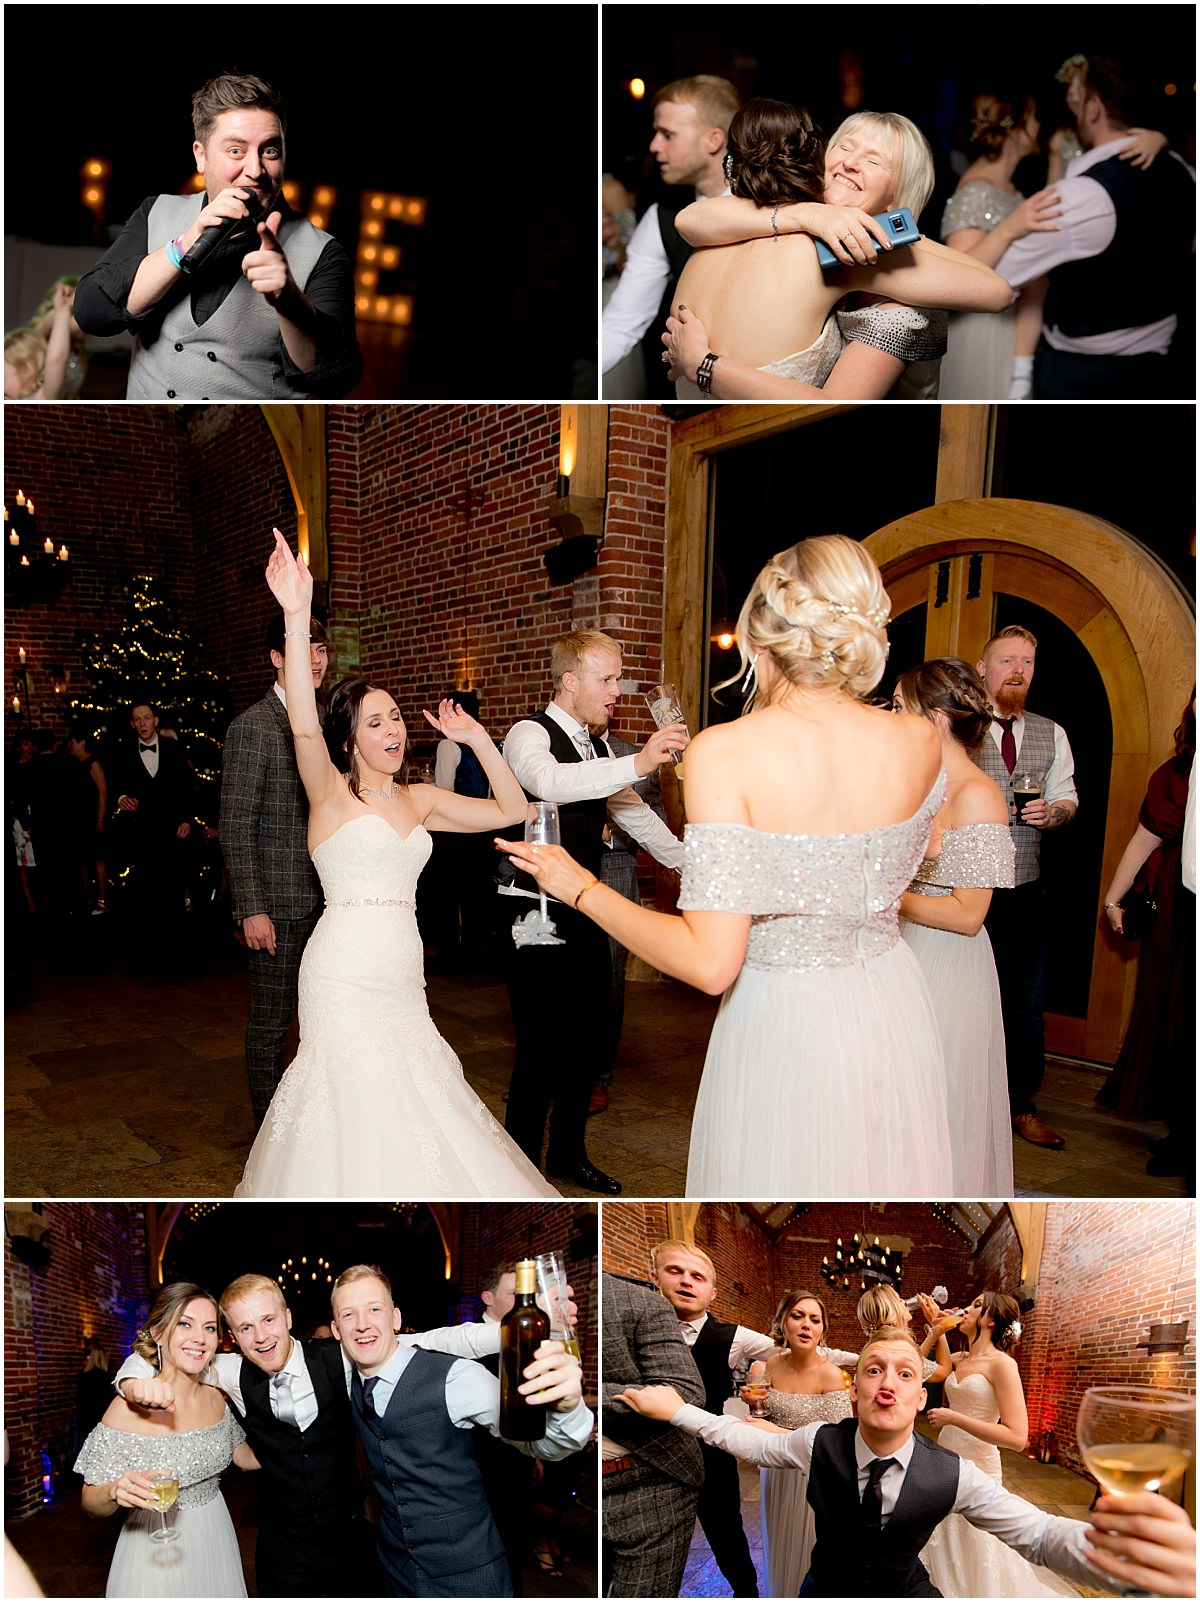 Winter Wedding at Hazel Gap Barn dancing